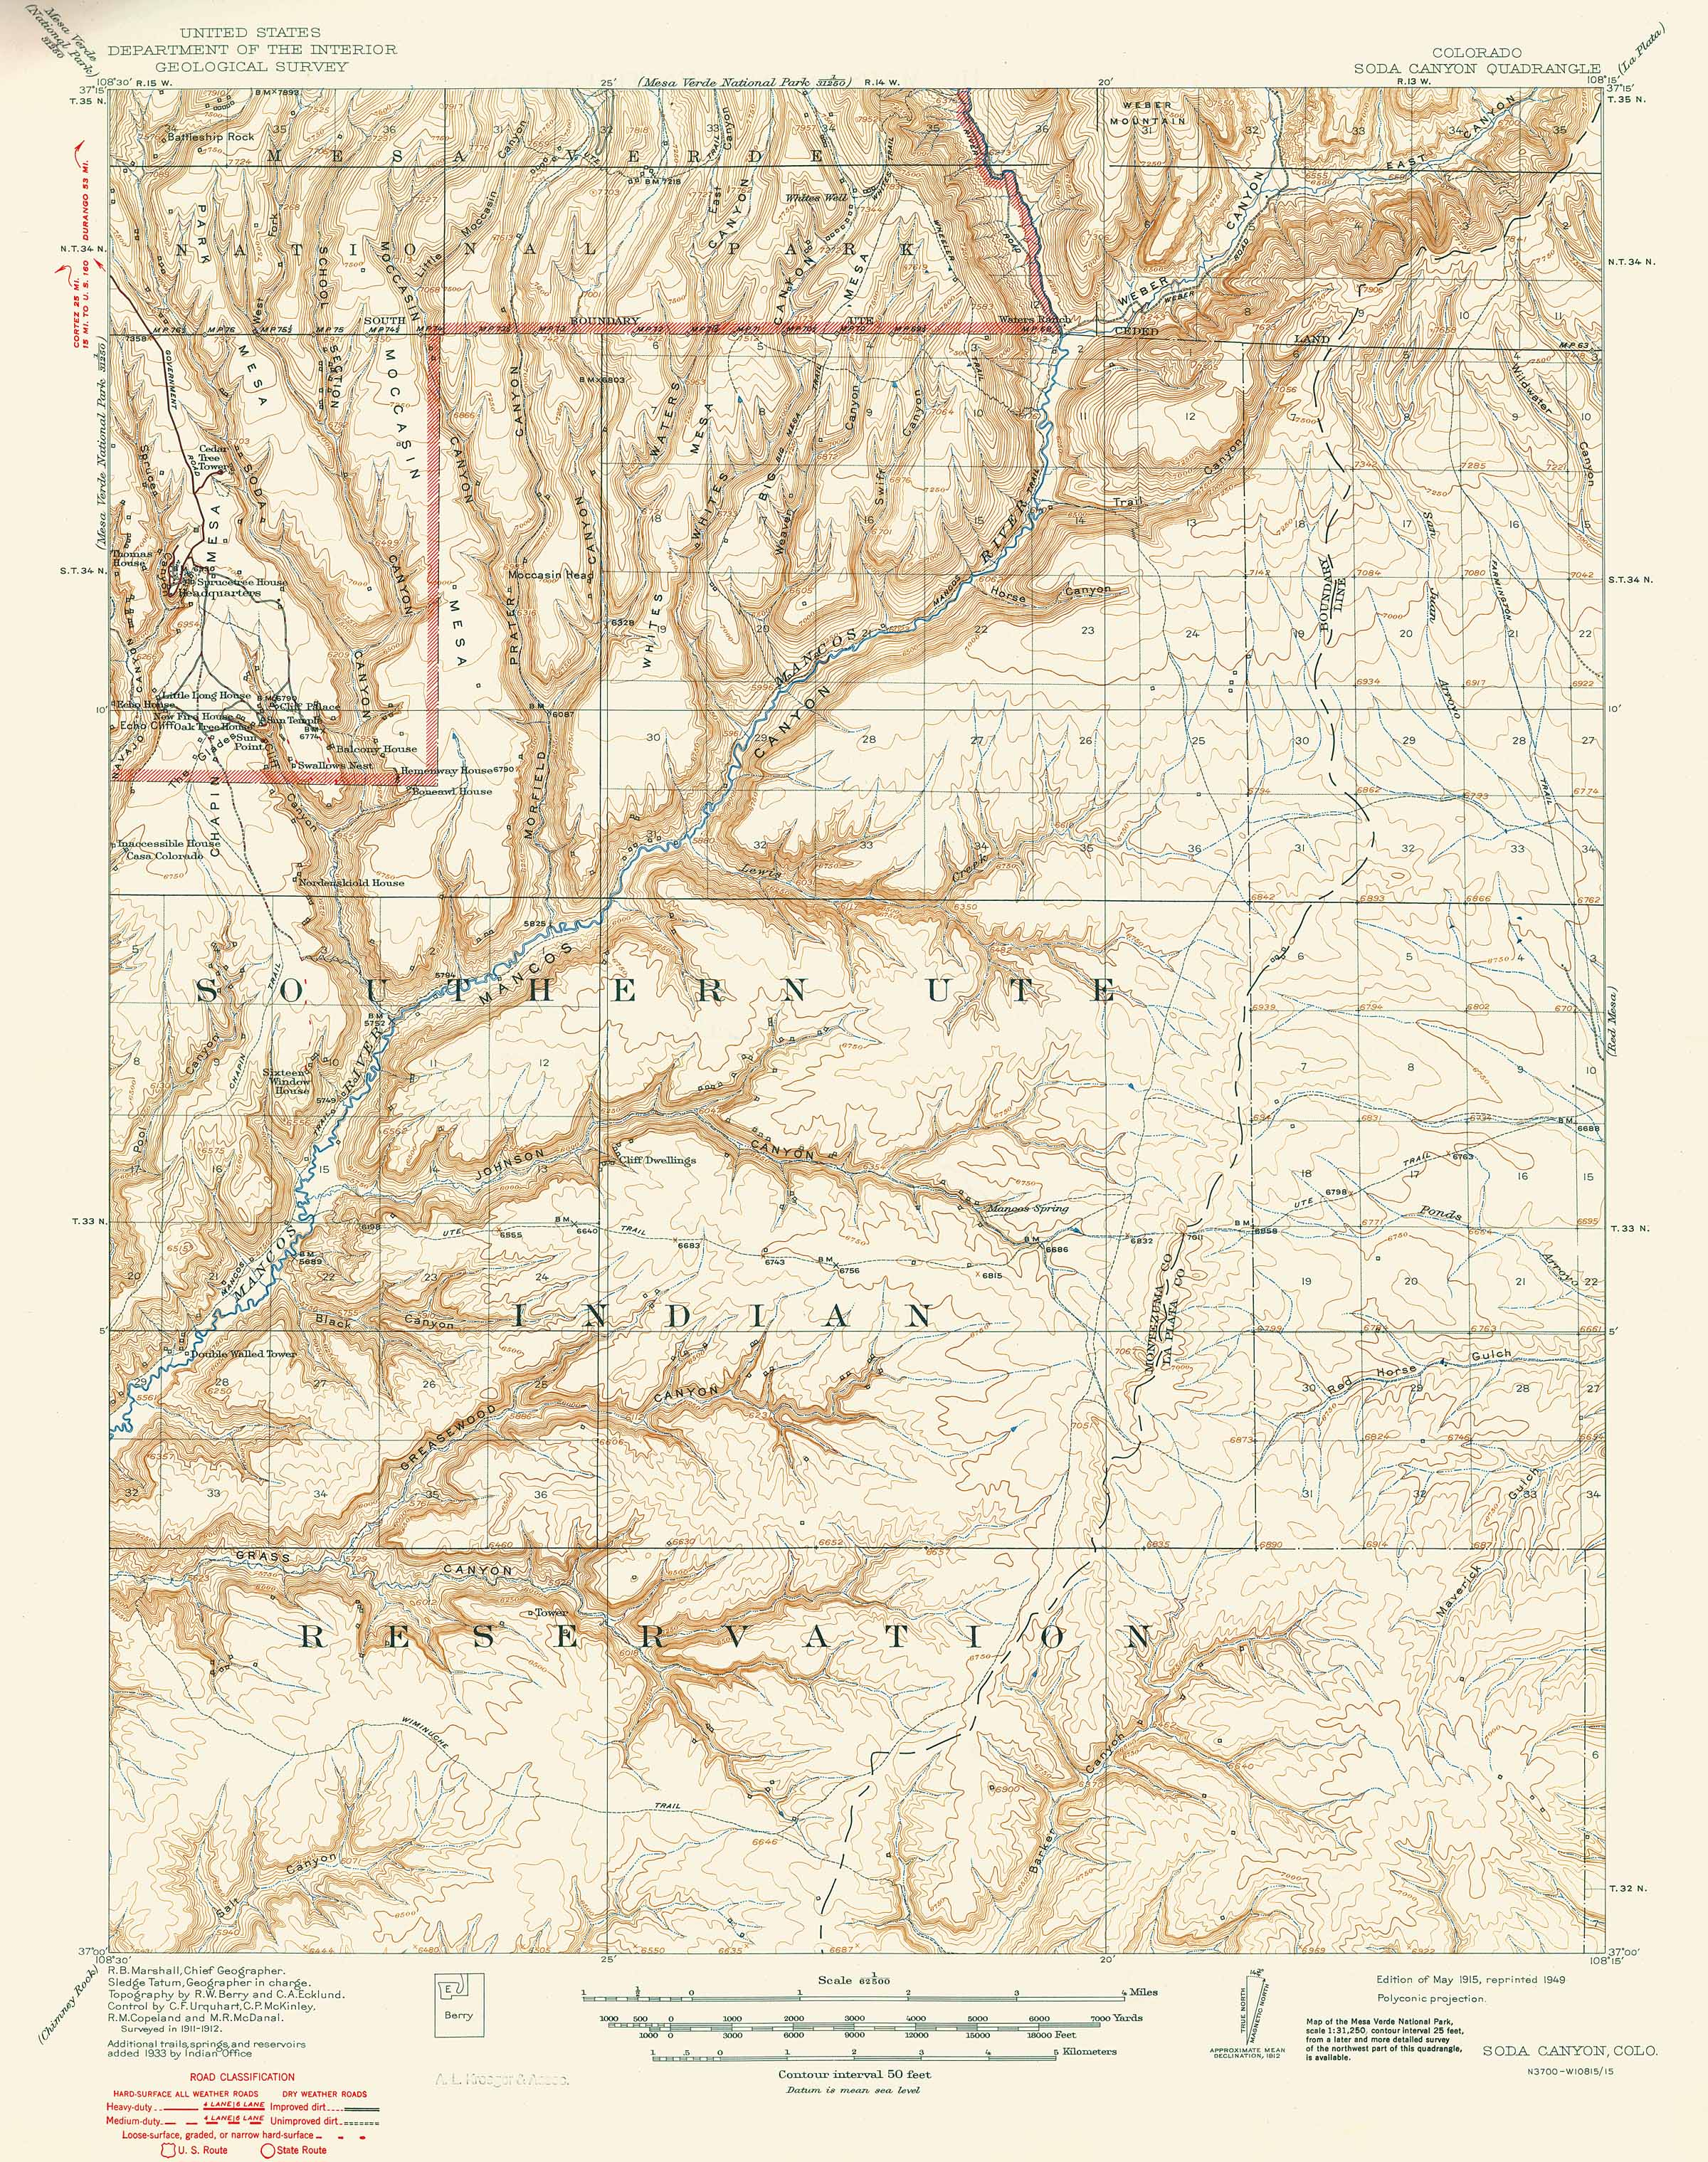 Collection C 007: USGS topographic map of Soda Canyon, CO ...